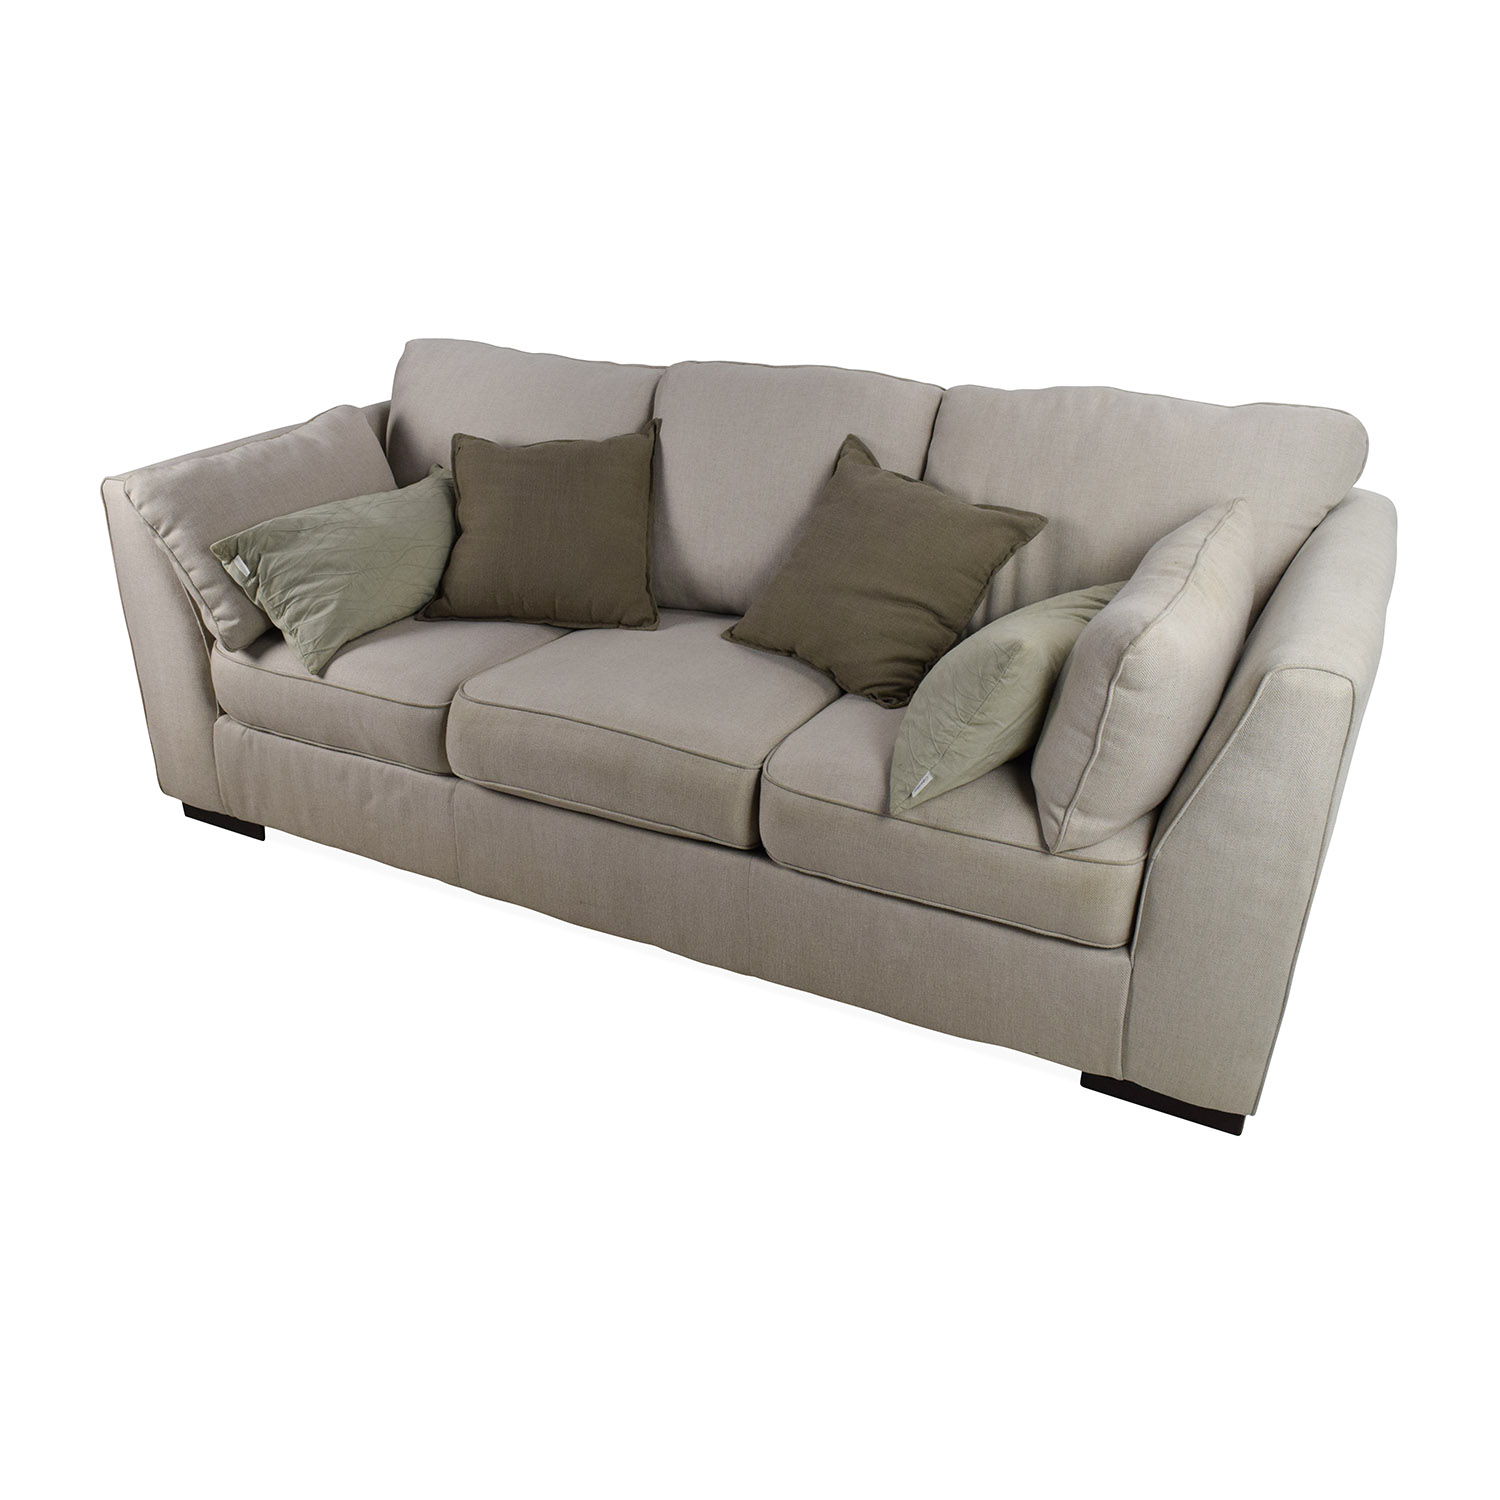 62 Off Ashley Furniture Ashley Furniture Pierin Sofa Sofas